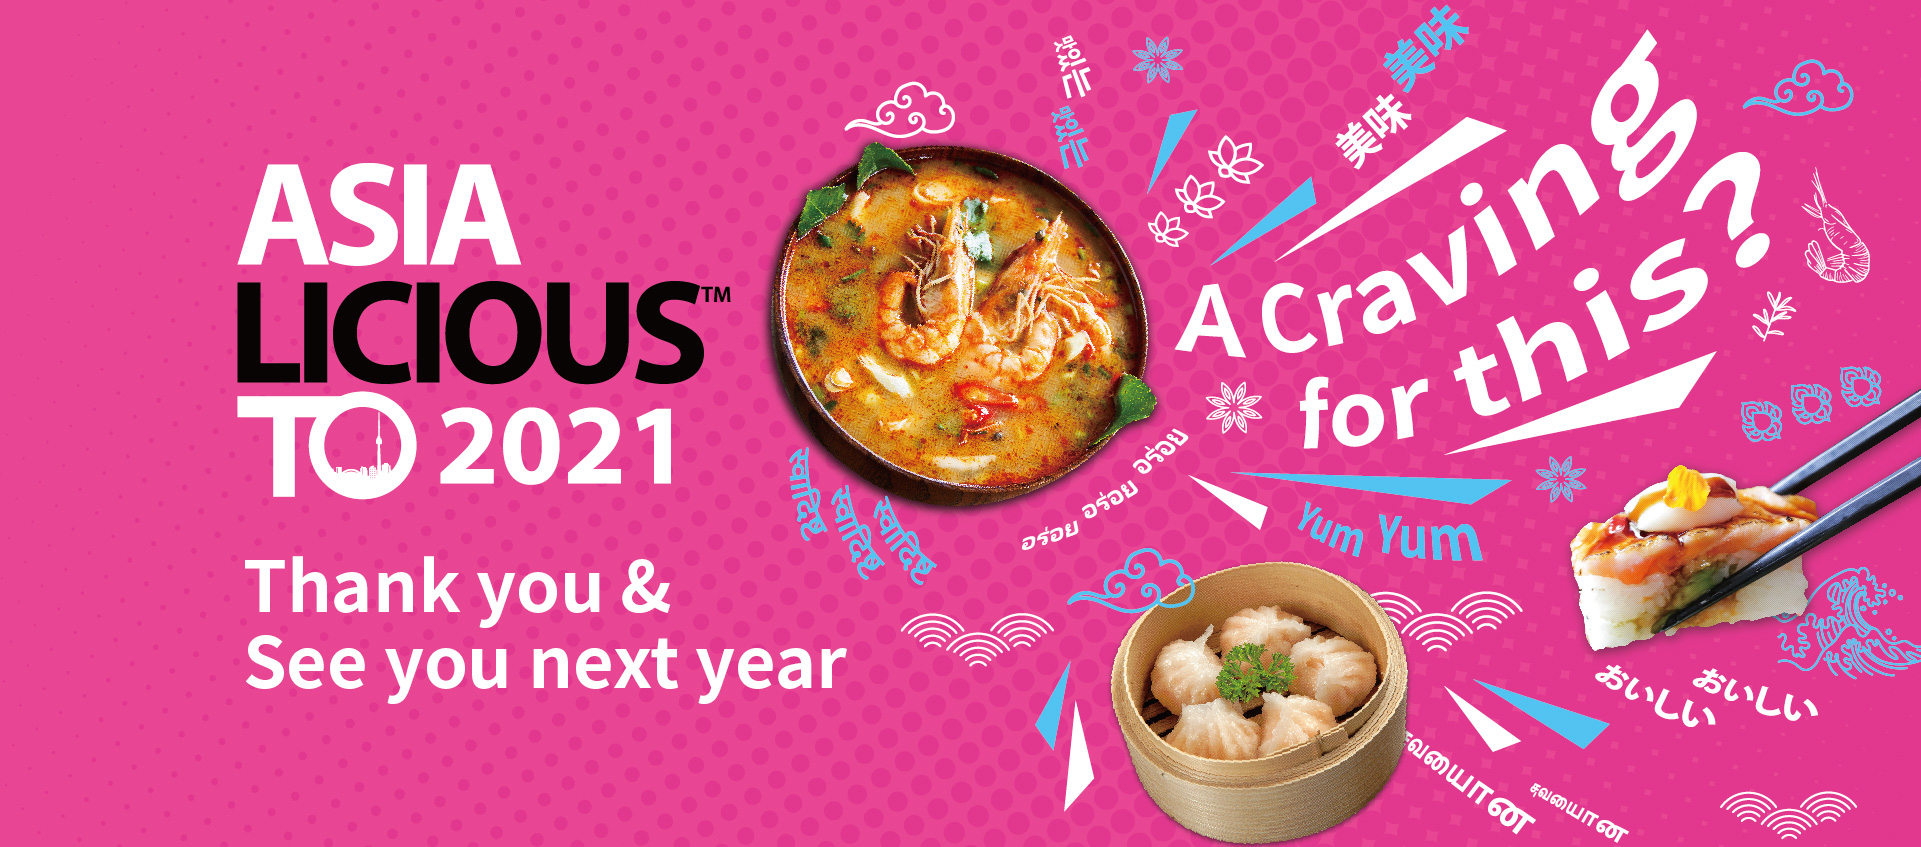 Asialicious website 2021 banner 2 | Home